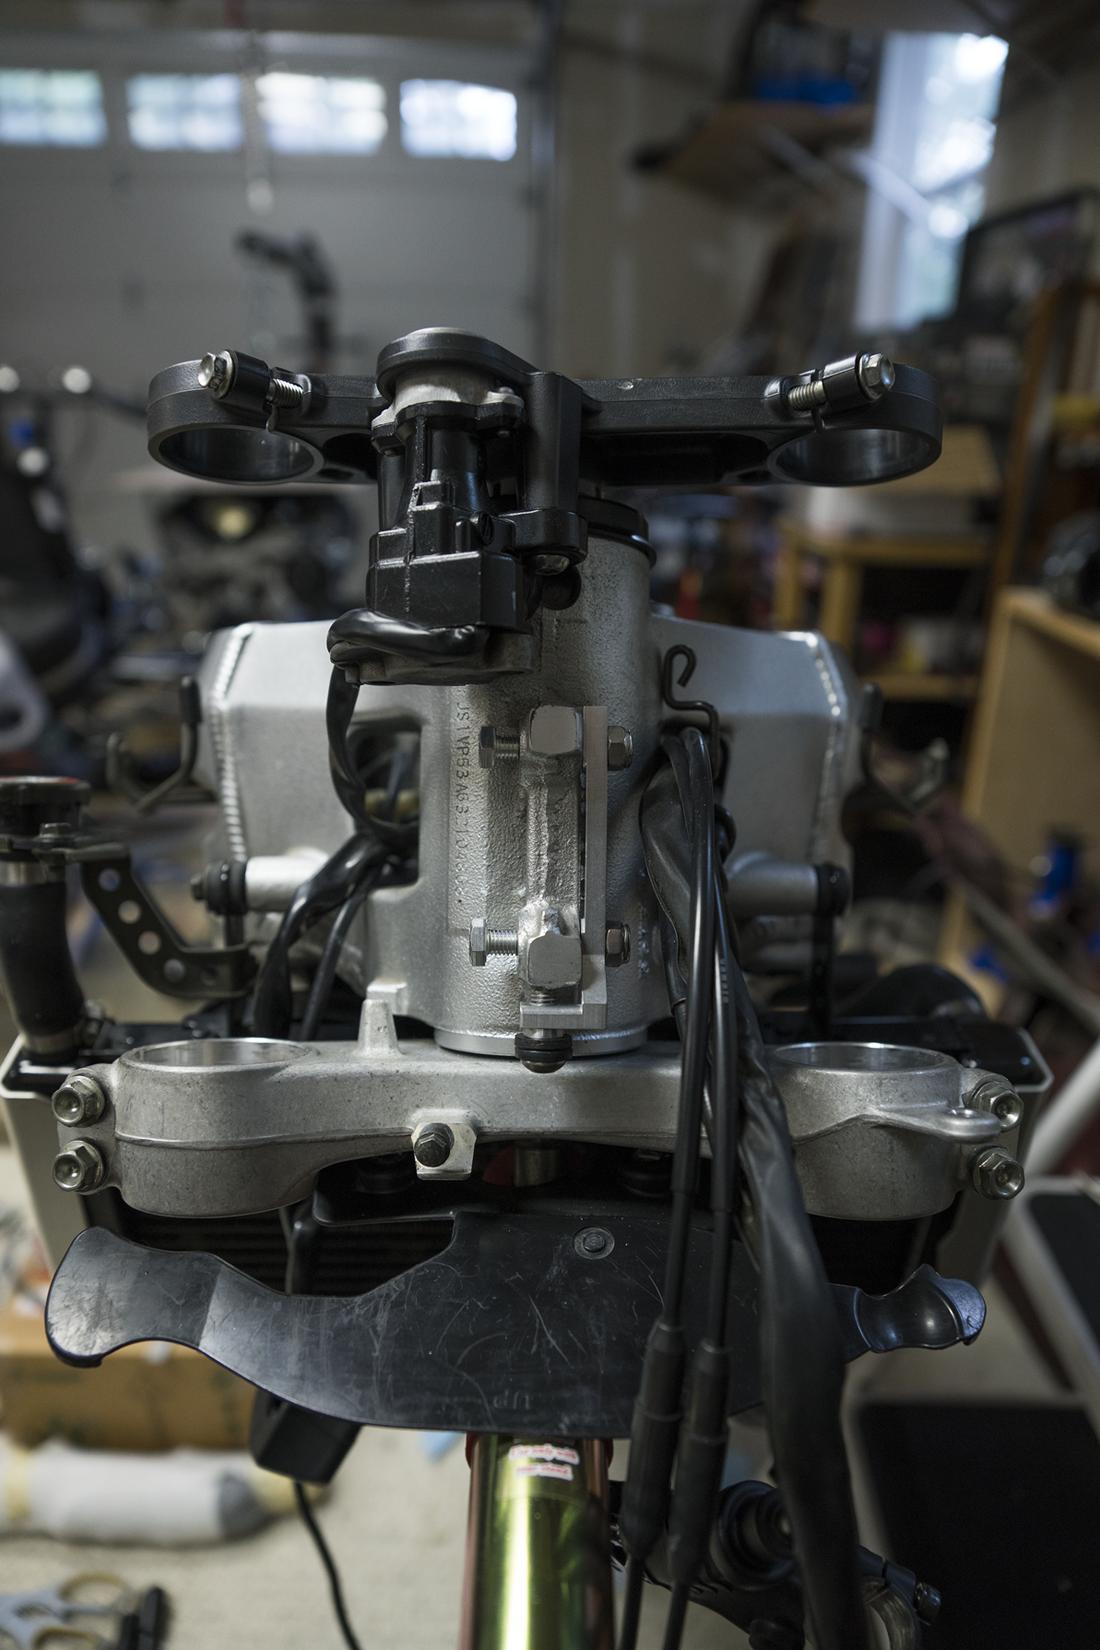 started working on the SV650S again...    blog.peterlombardi.com